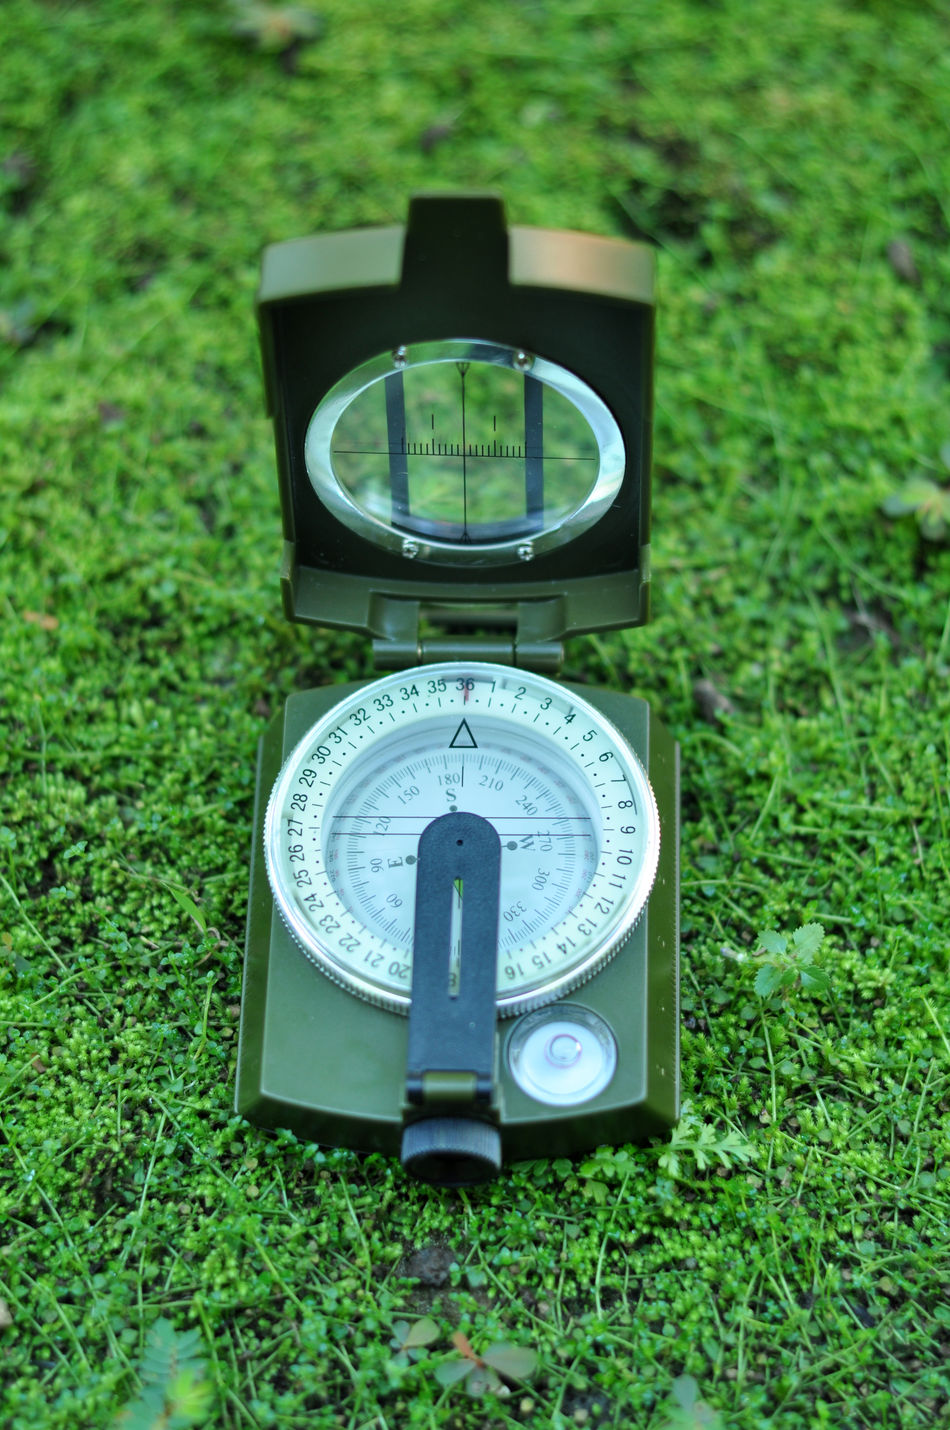 Outdoor Compass Close-up Day Direction Expedition Field Grass Green Color Hiking Instrument Of Measurement Journey Lost Meter - Instrument Of Measurement Nature Navigation Navigational Compass No People No People Outdoors North Number Outdoors Traveling Trekking